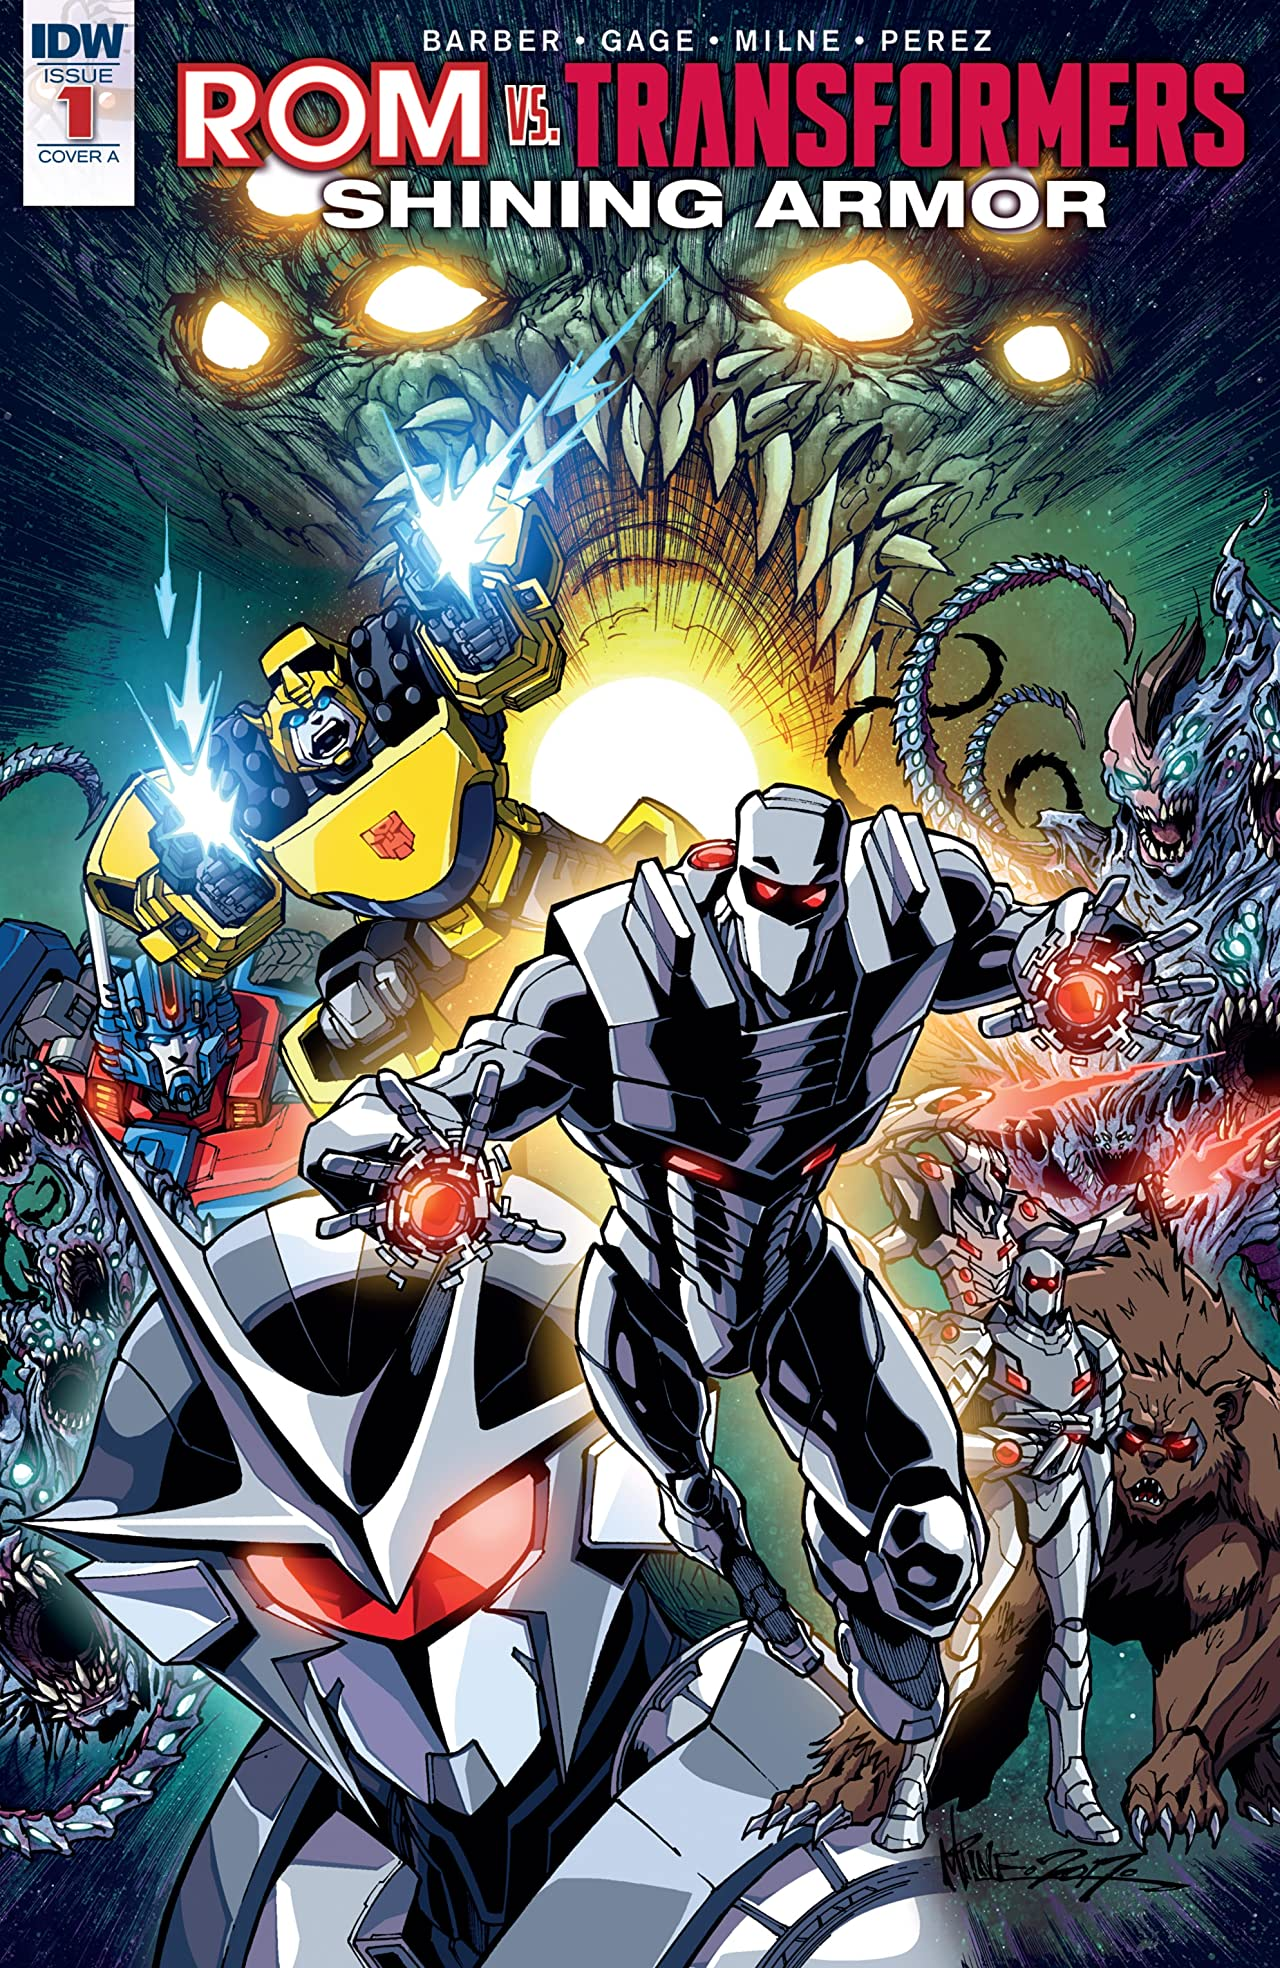 ROM vs. Transformers: Shining Armor #1